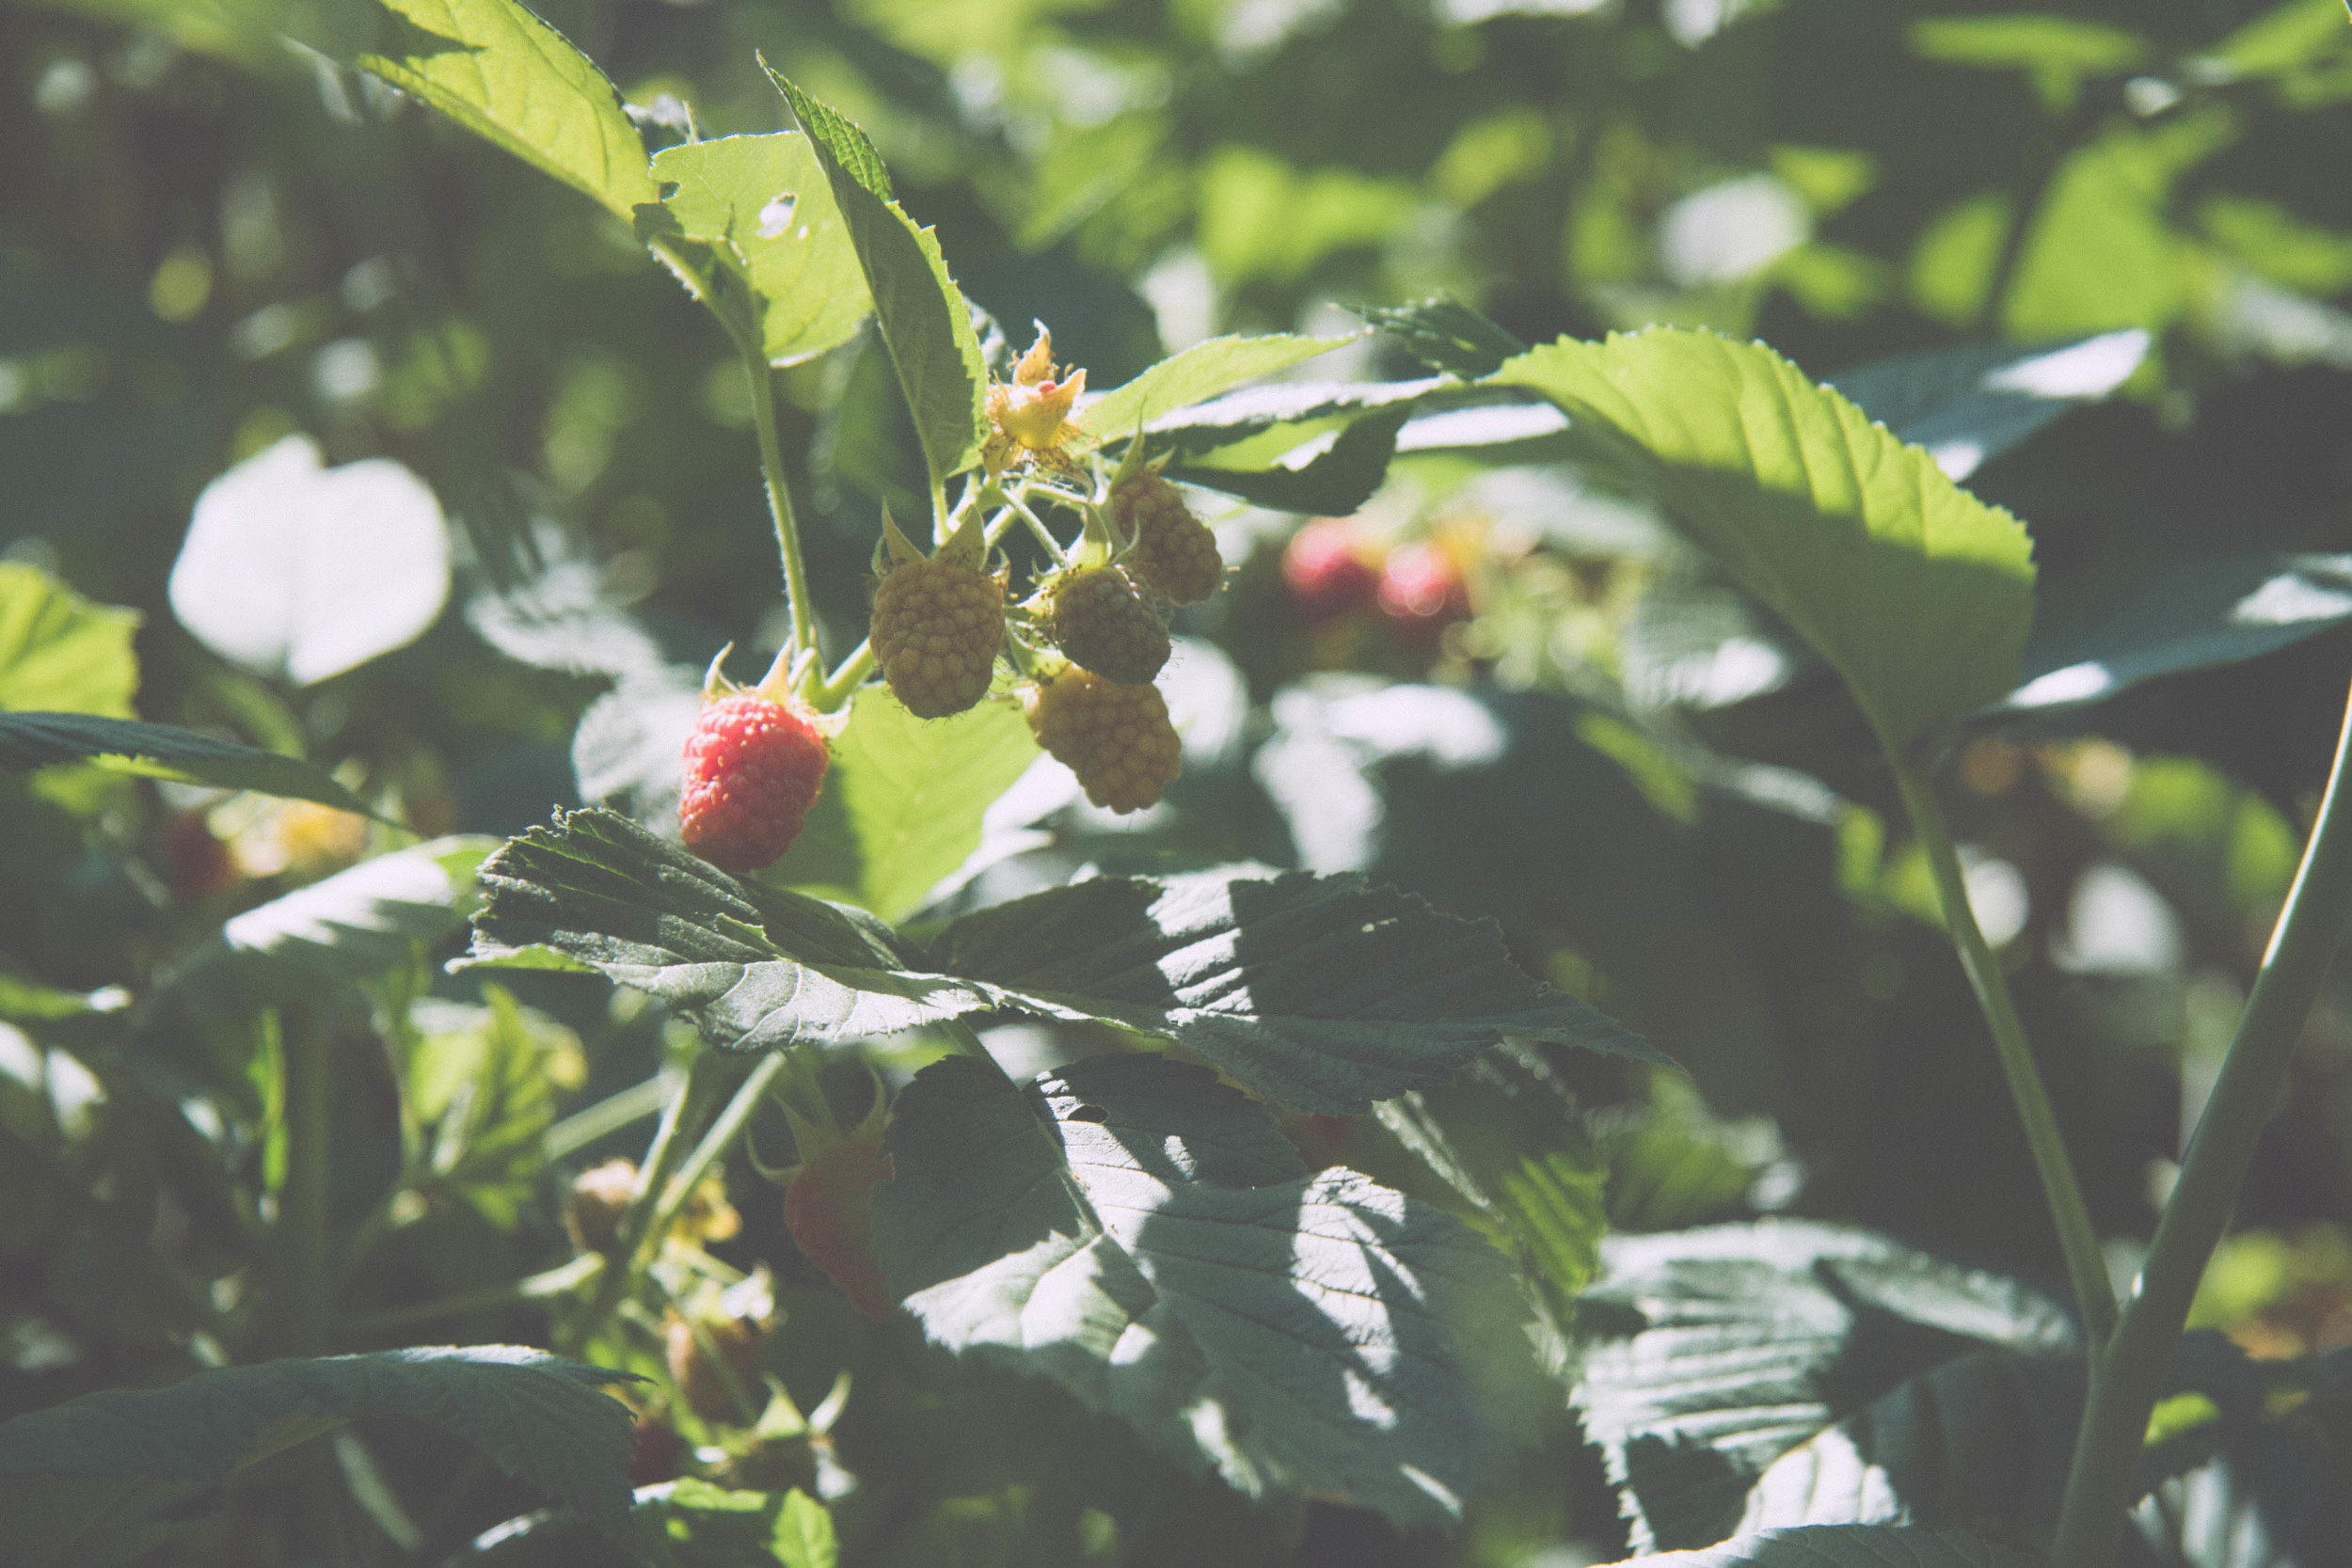 Raspberries at Jim and Melody Croft's homestead in northern Idaho, summer 2017.